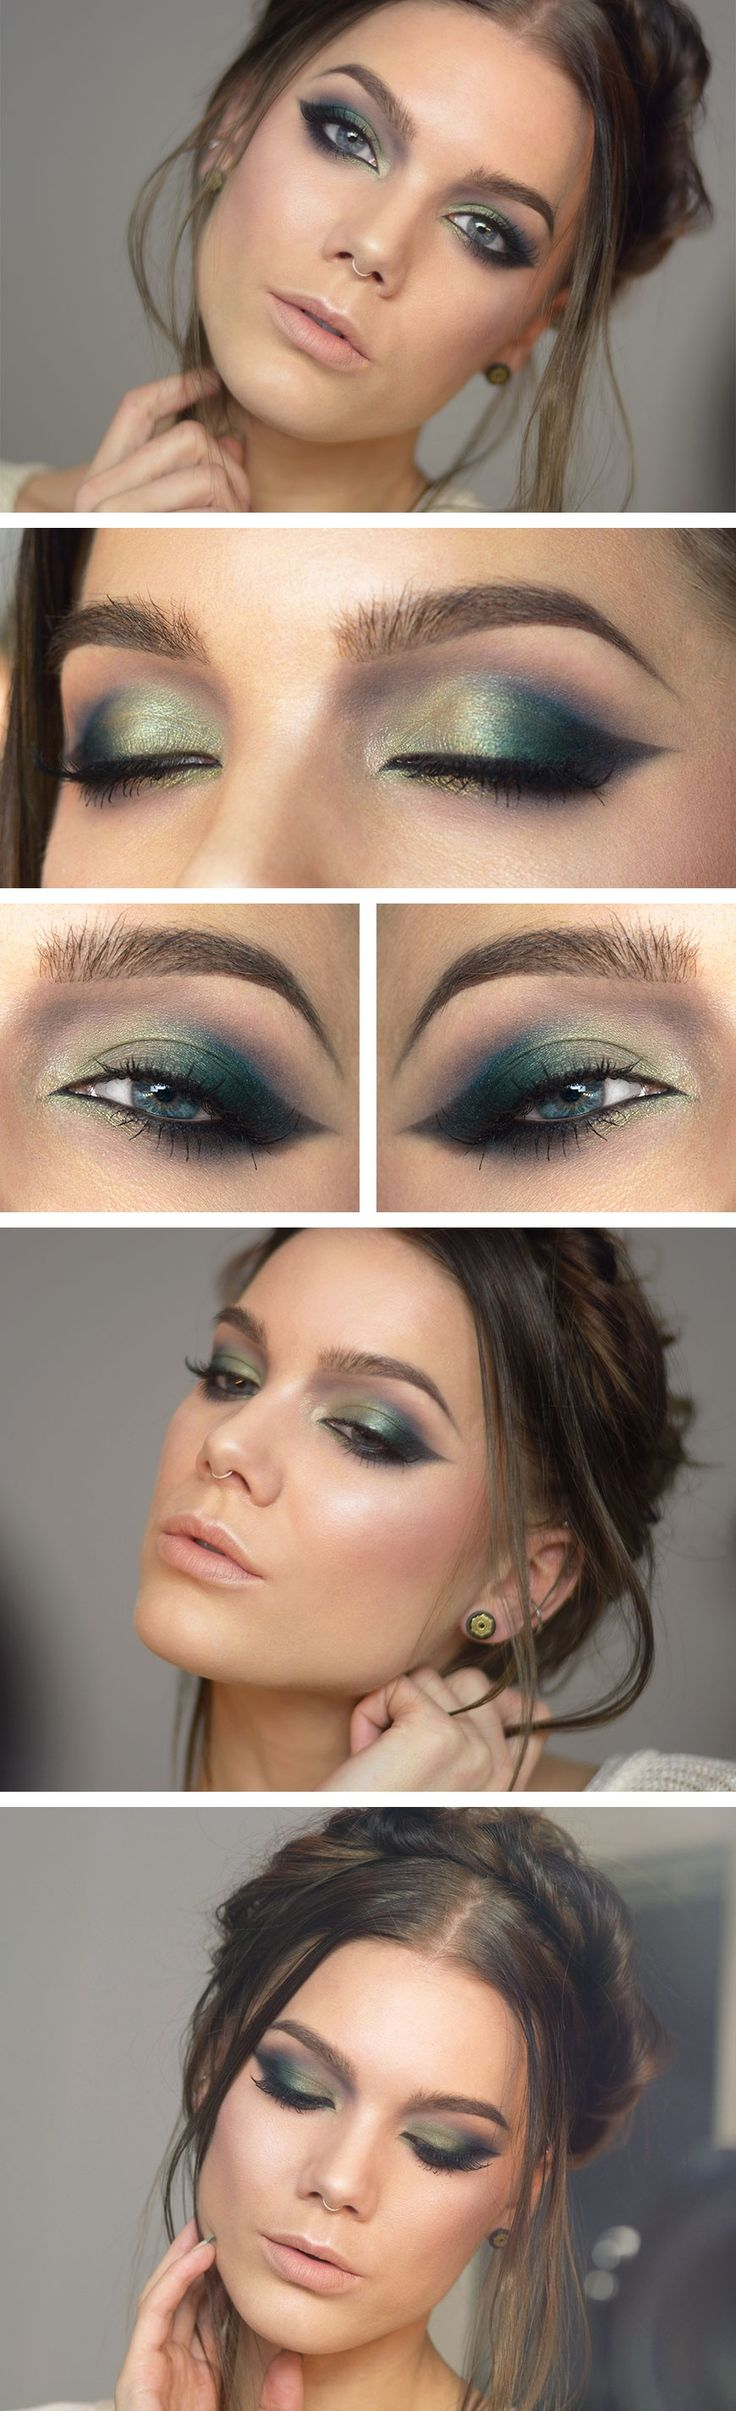 See More #Makeup #Ideas On: http://mymakeupideas.com/brown-foundation-yes-or-no/: